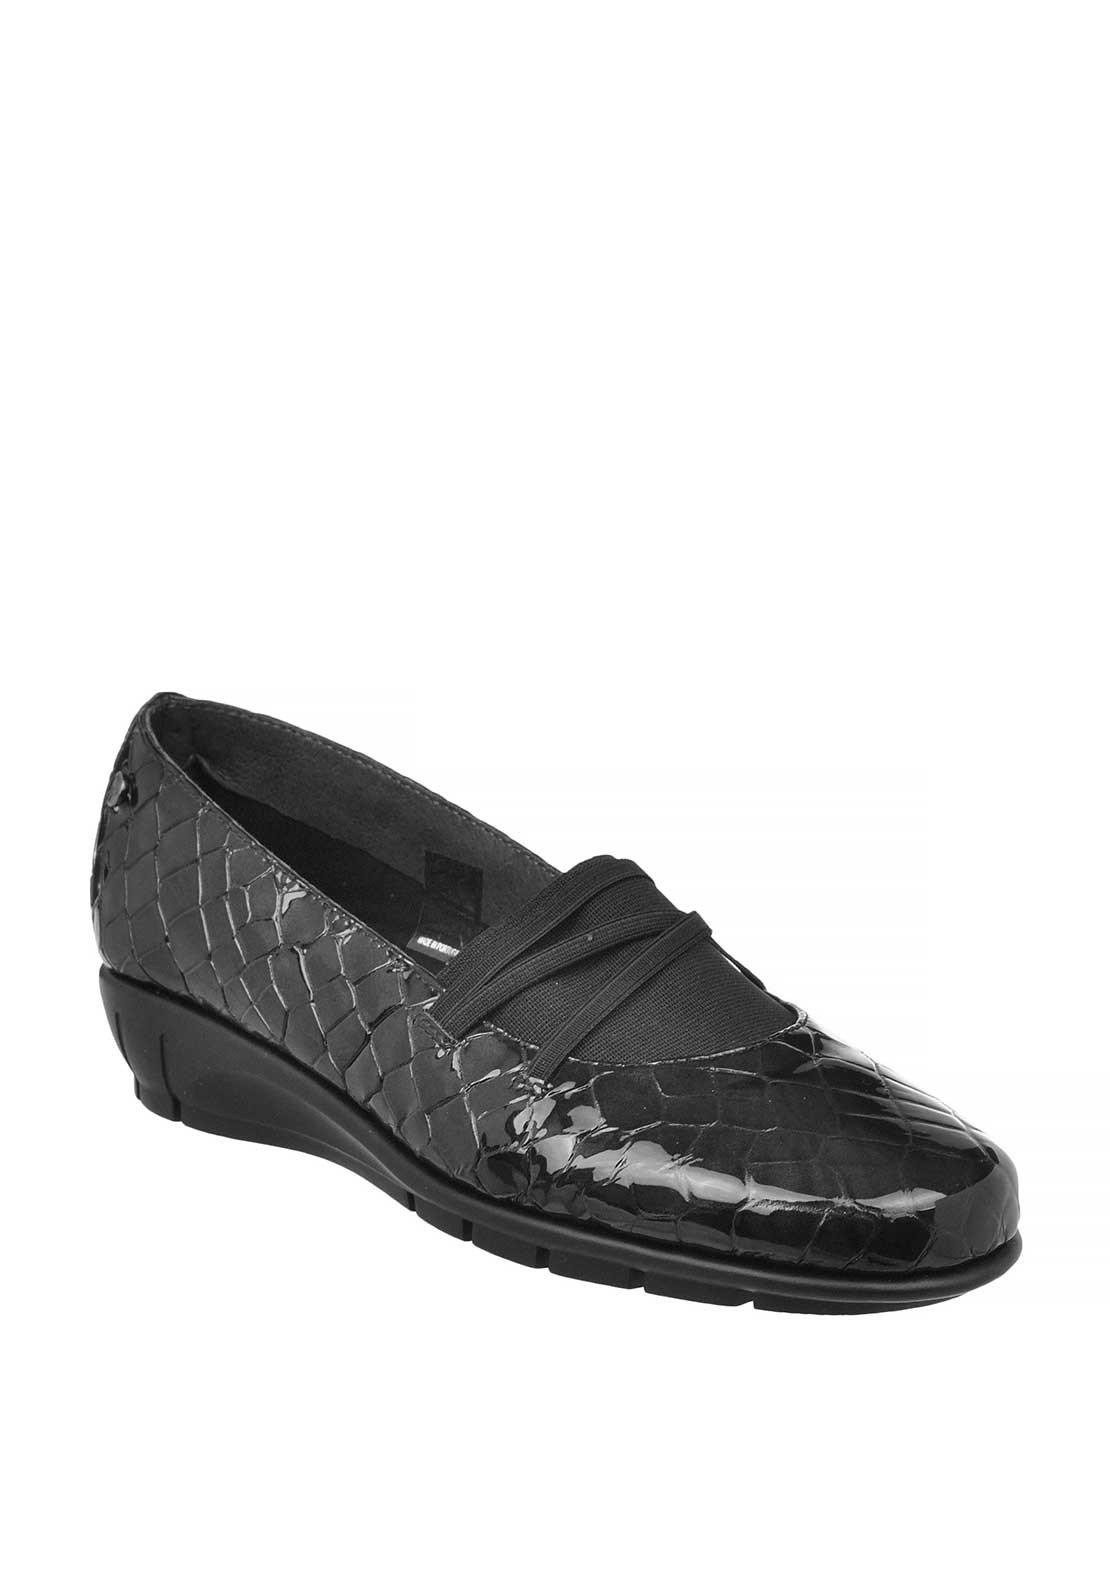 Flex & Go Paris Patent Leather Reptile Print Slip on Shoes, Black